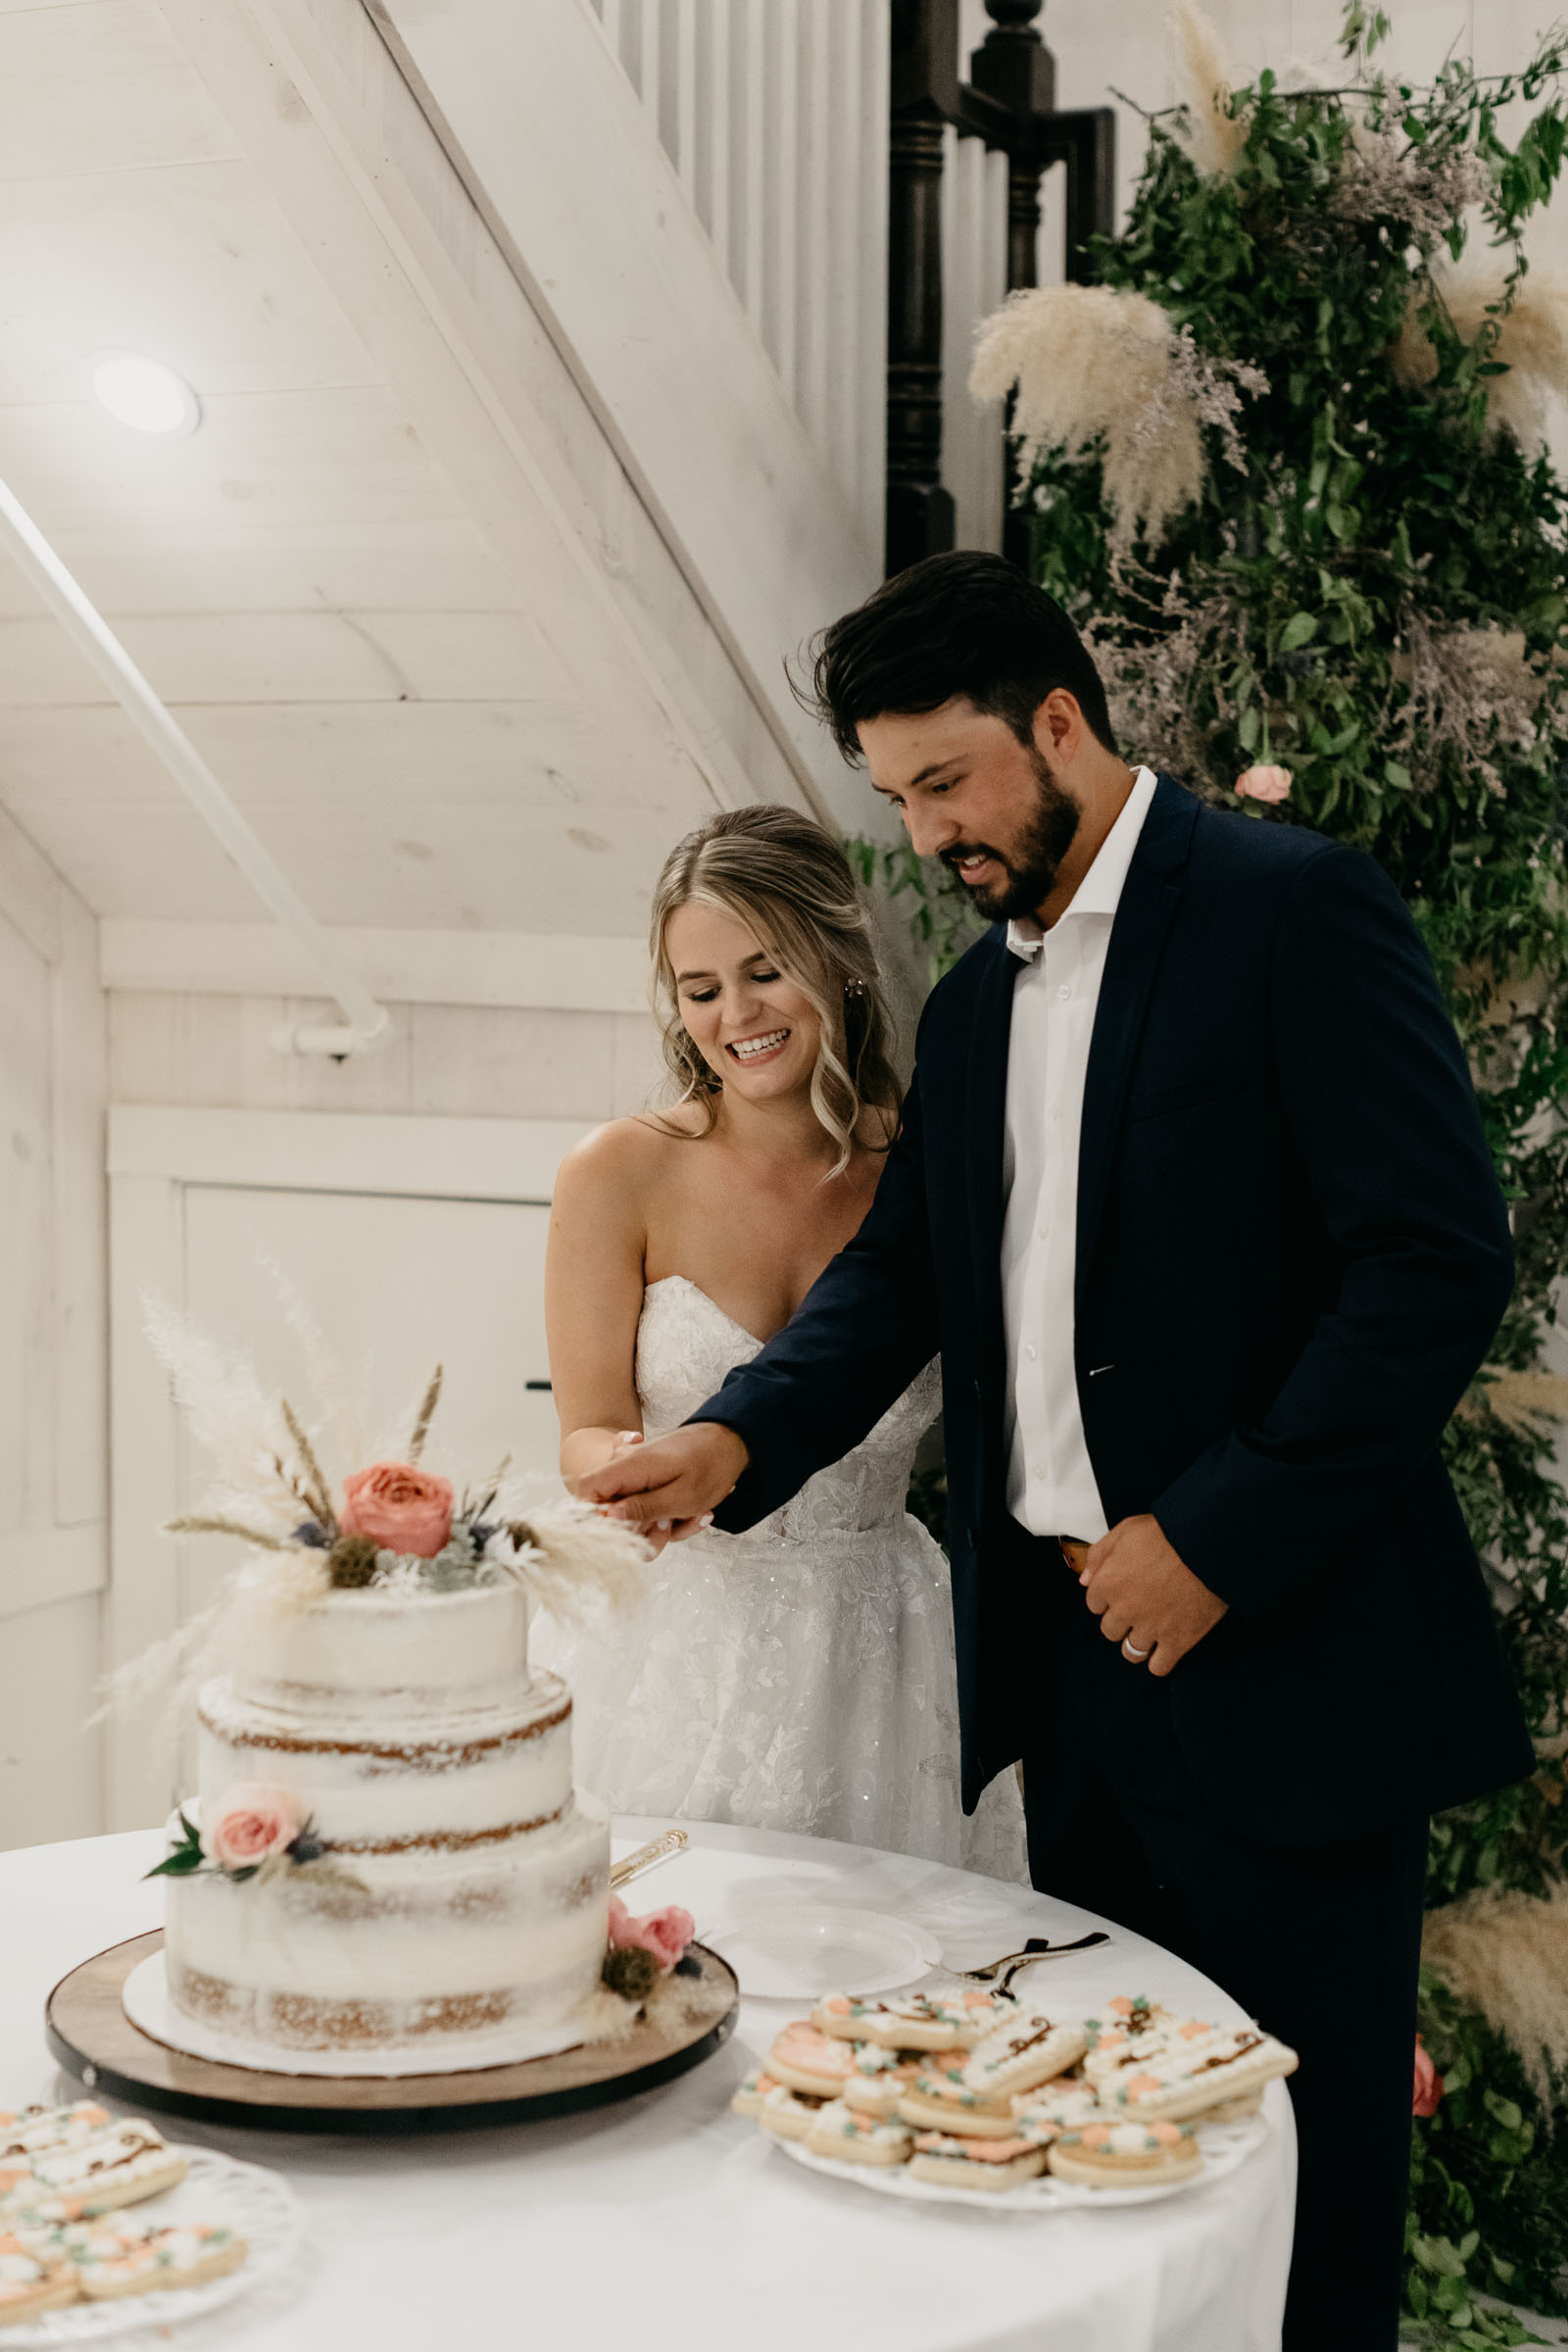 bride and groom cutting their wedding cake at one Preston events in DFW